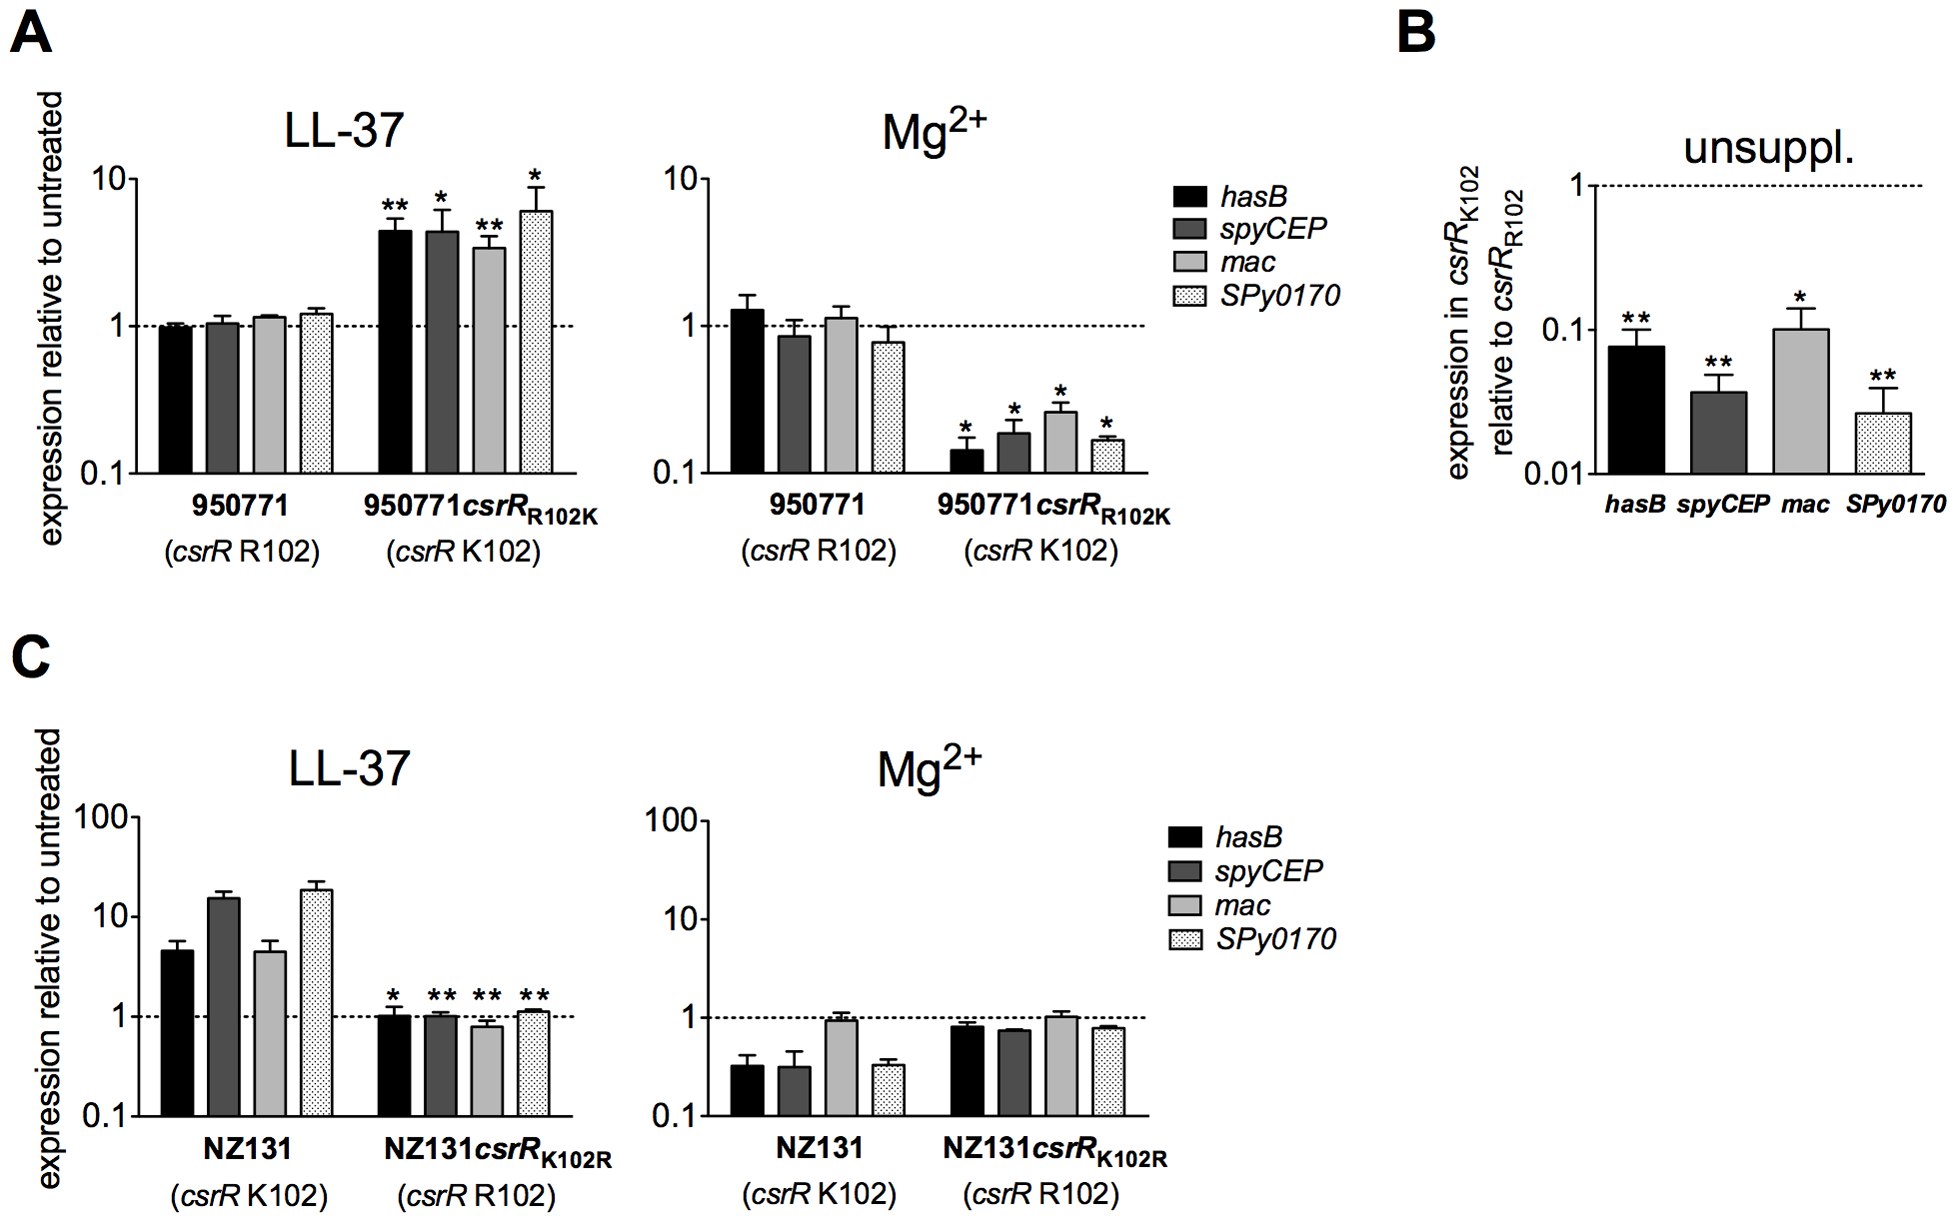 A lysine residue at position 102 is essential for CsrR to transduce LL-37 signaling.